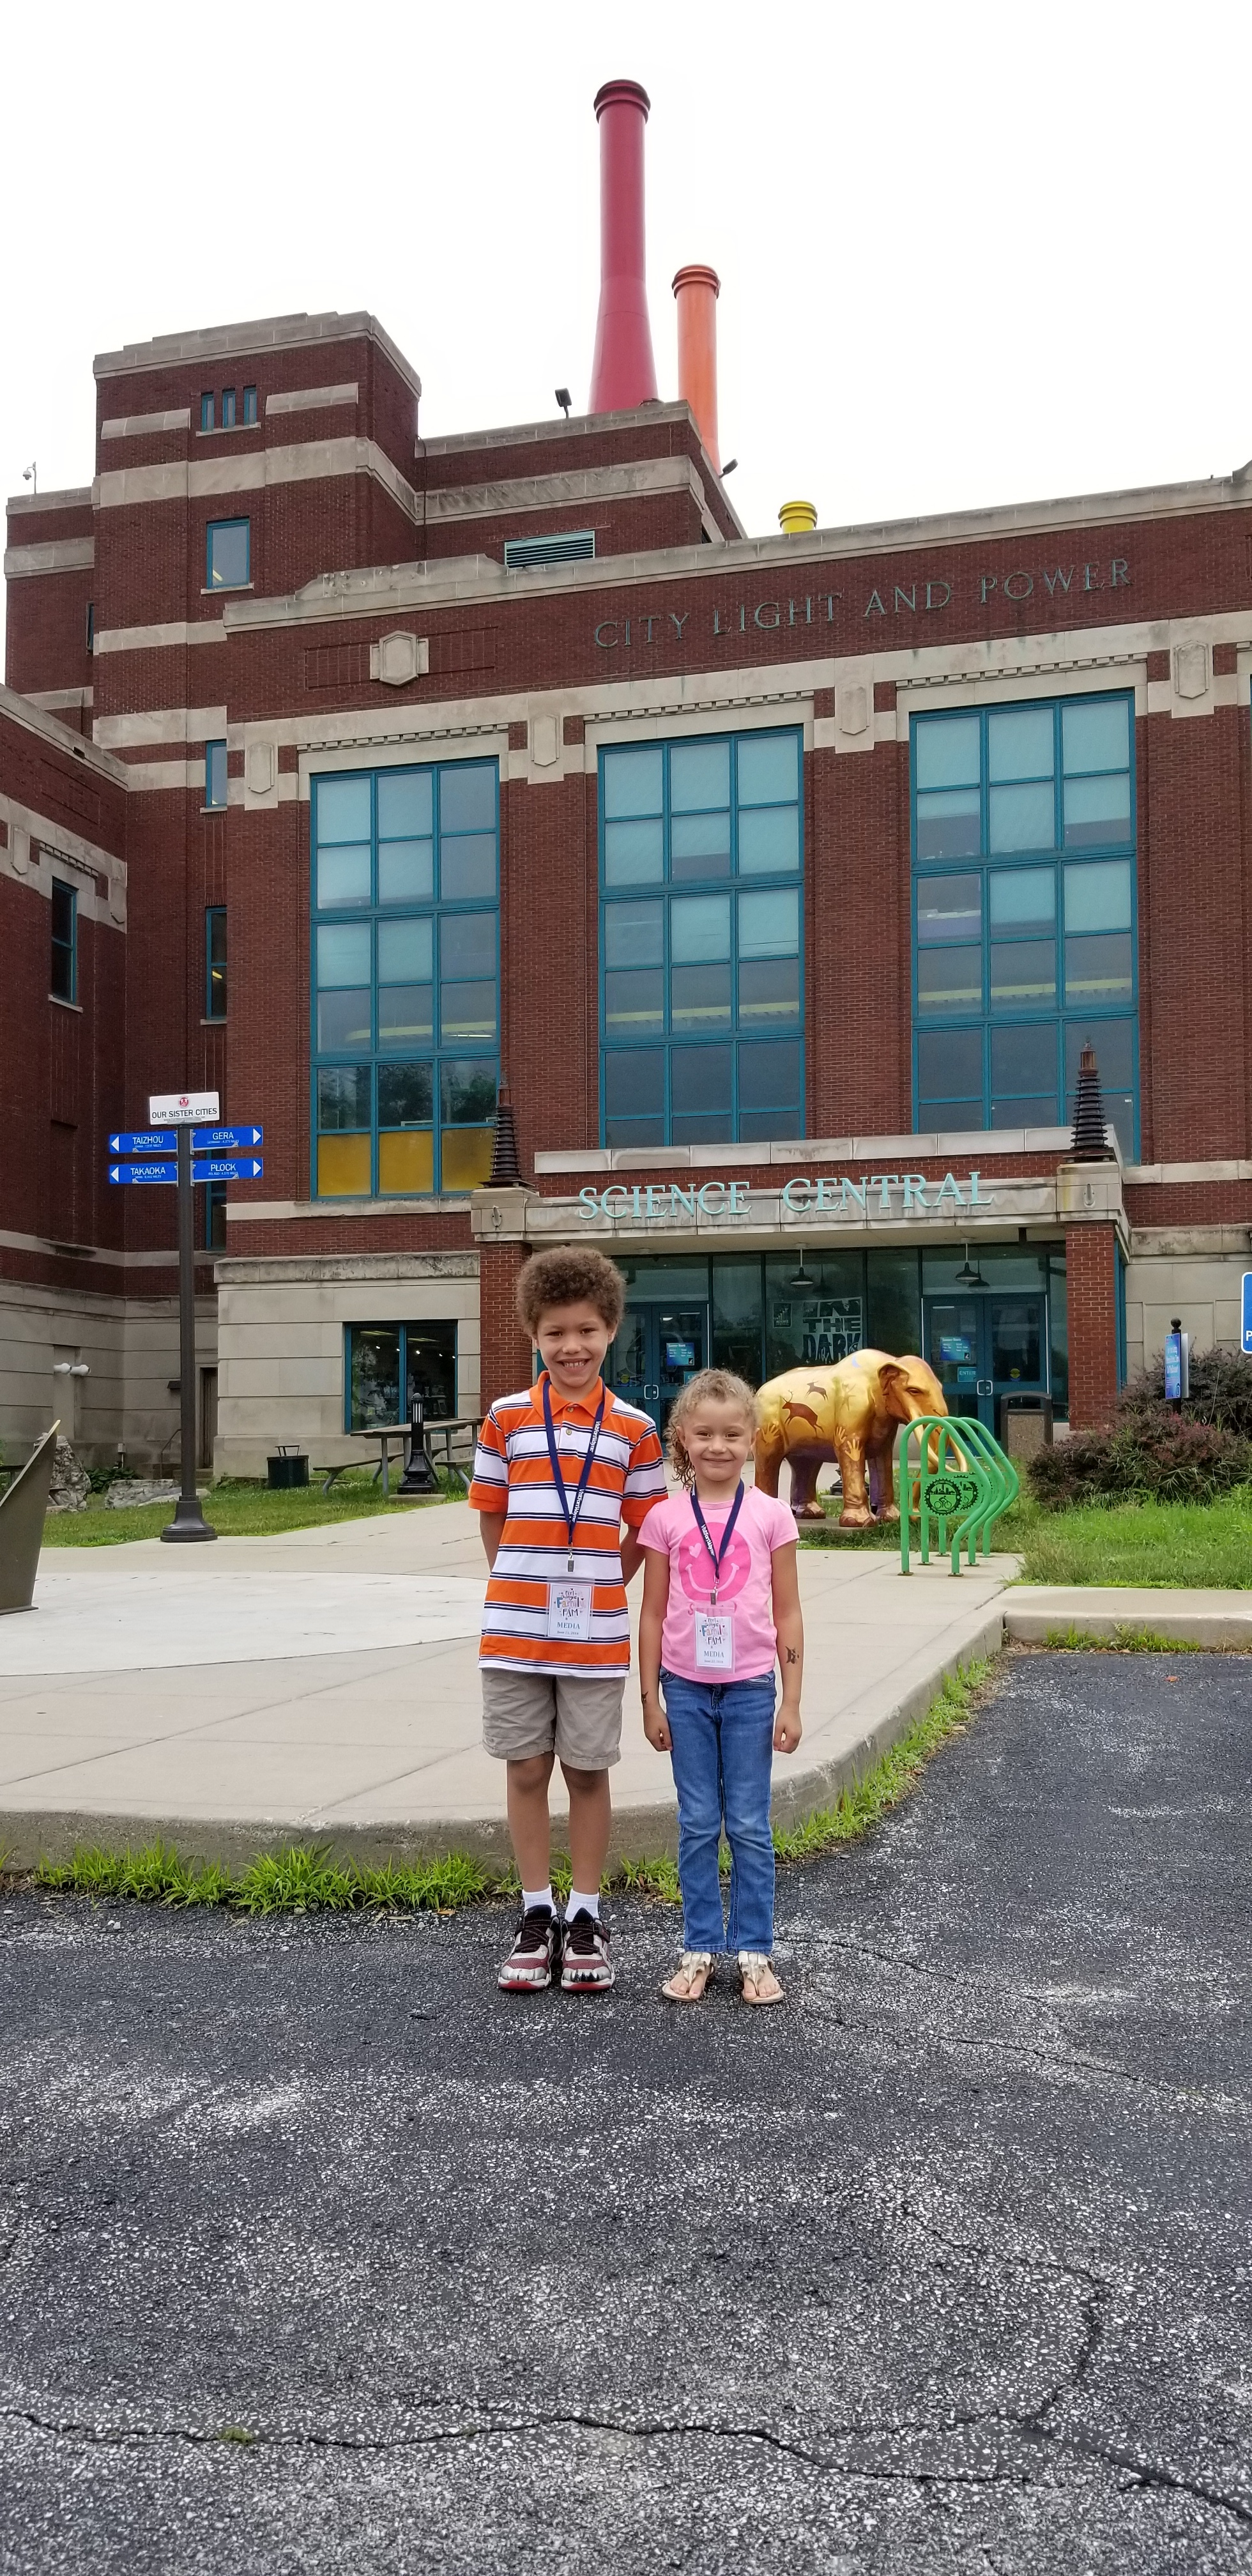 Kids at Science Central in Fort Wayne